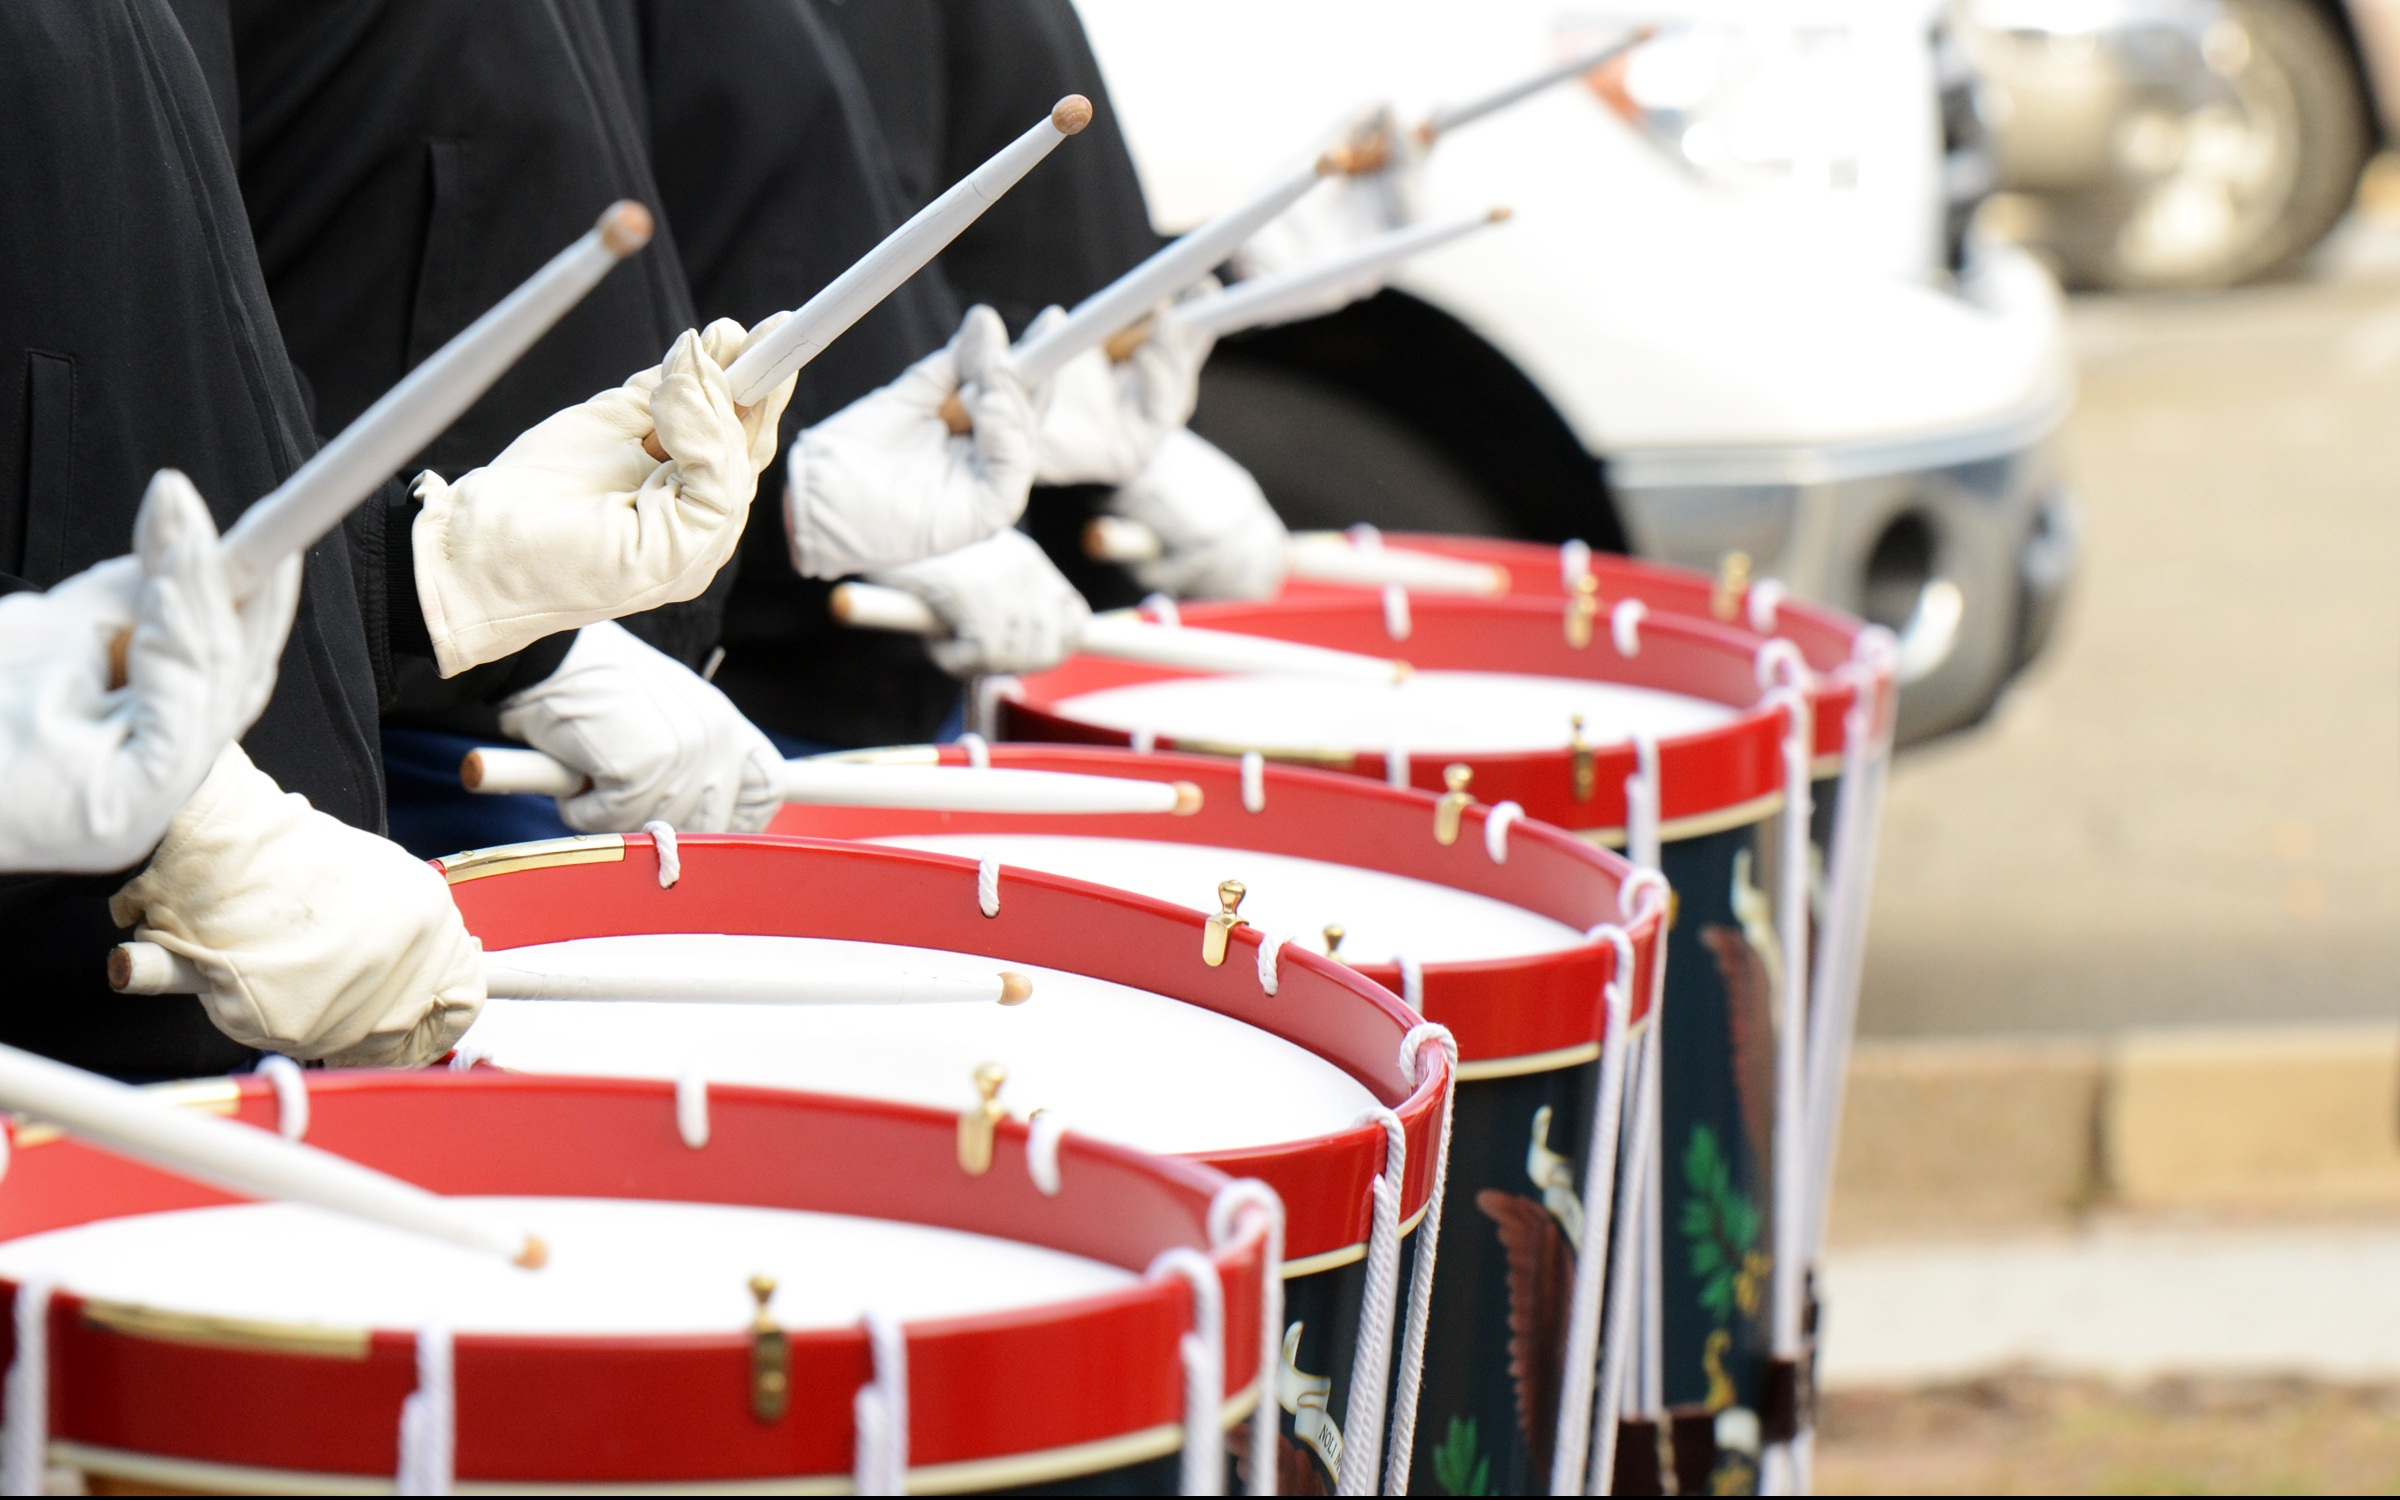 Iphone 5 Wallpaper Photography Group Of People Playing Drums During Daytime 183 Free Stock